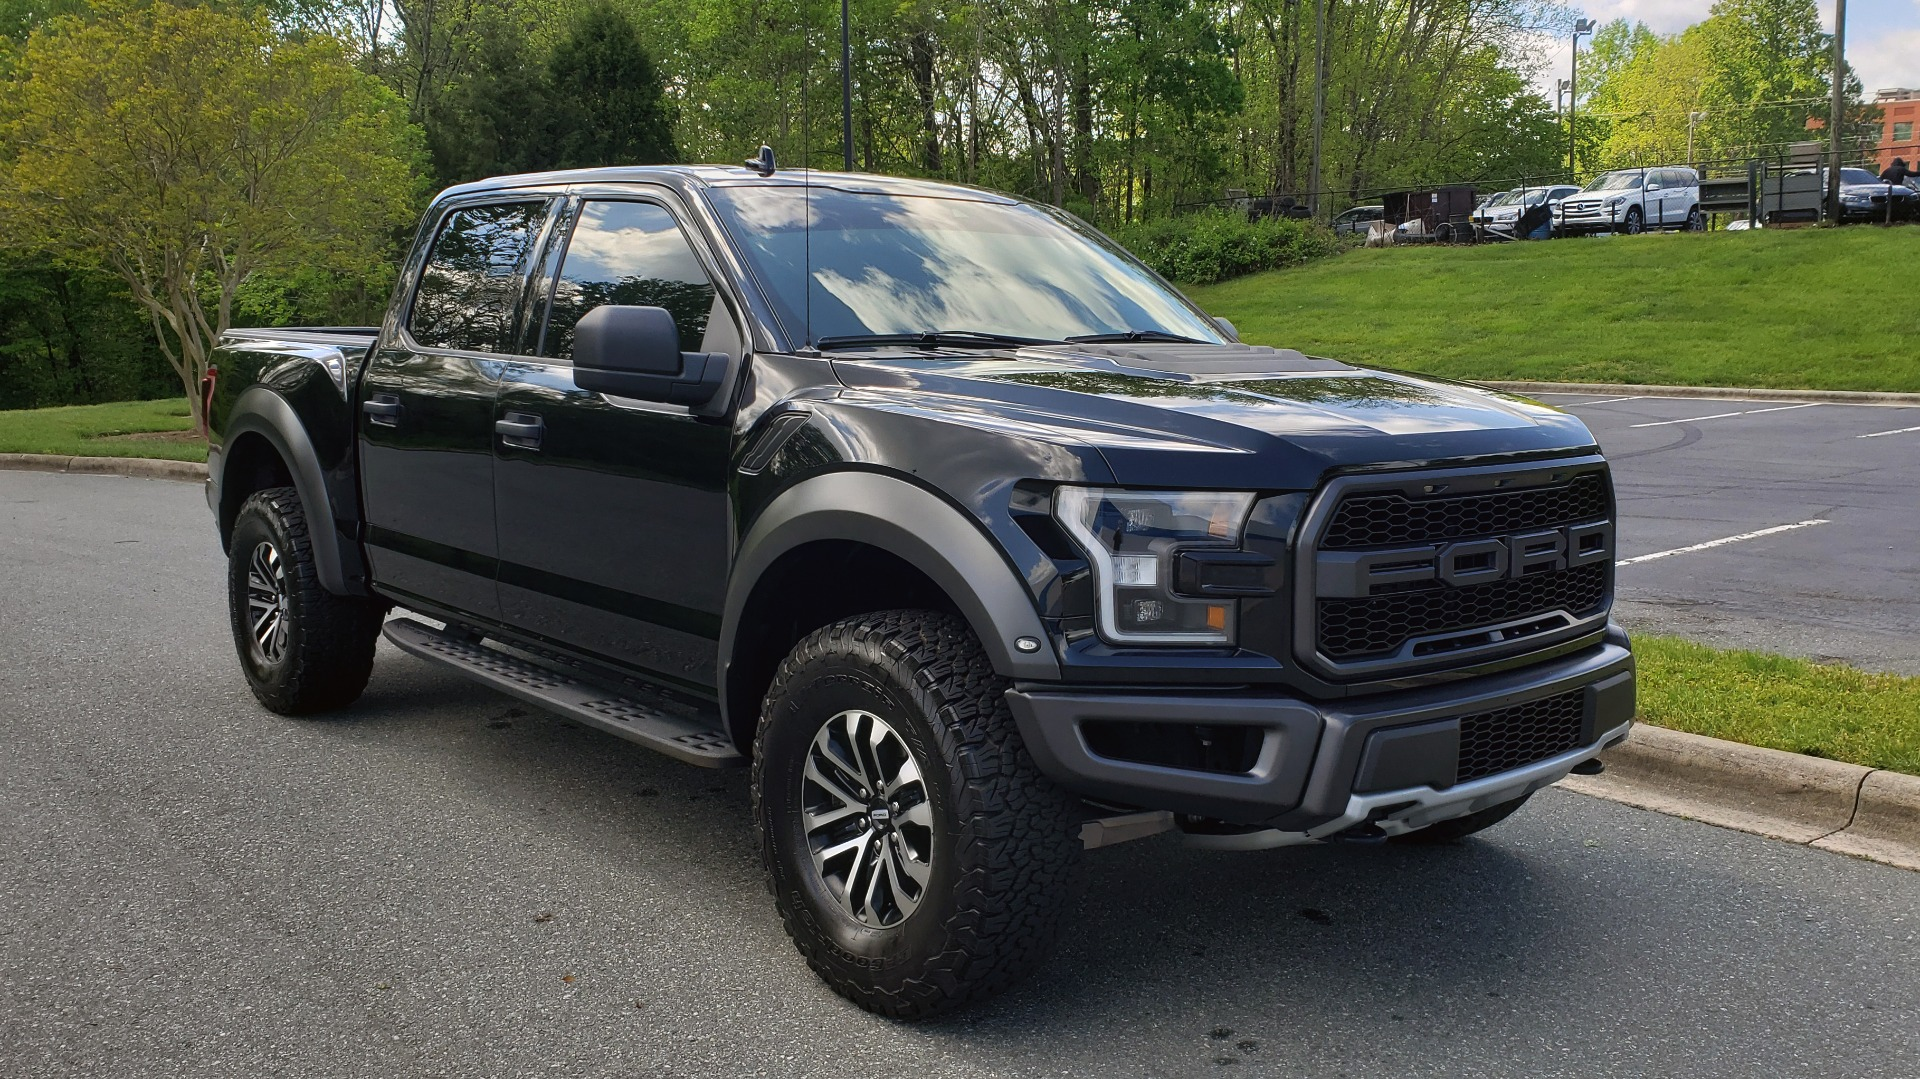 Used 2019 Ford F-150 RAPTOR CREW CAB 4X4 5.5' BOX / REMOTE START / TAILGATE STEP for sale Sold at Formula Imports in Charlotte NC 28227 4